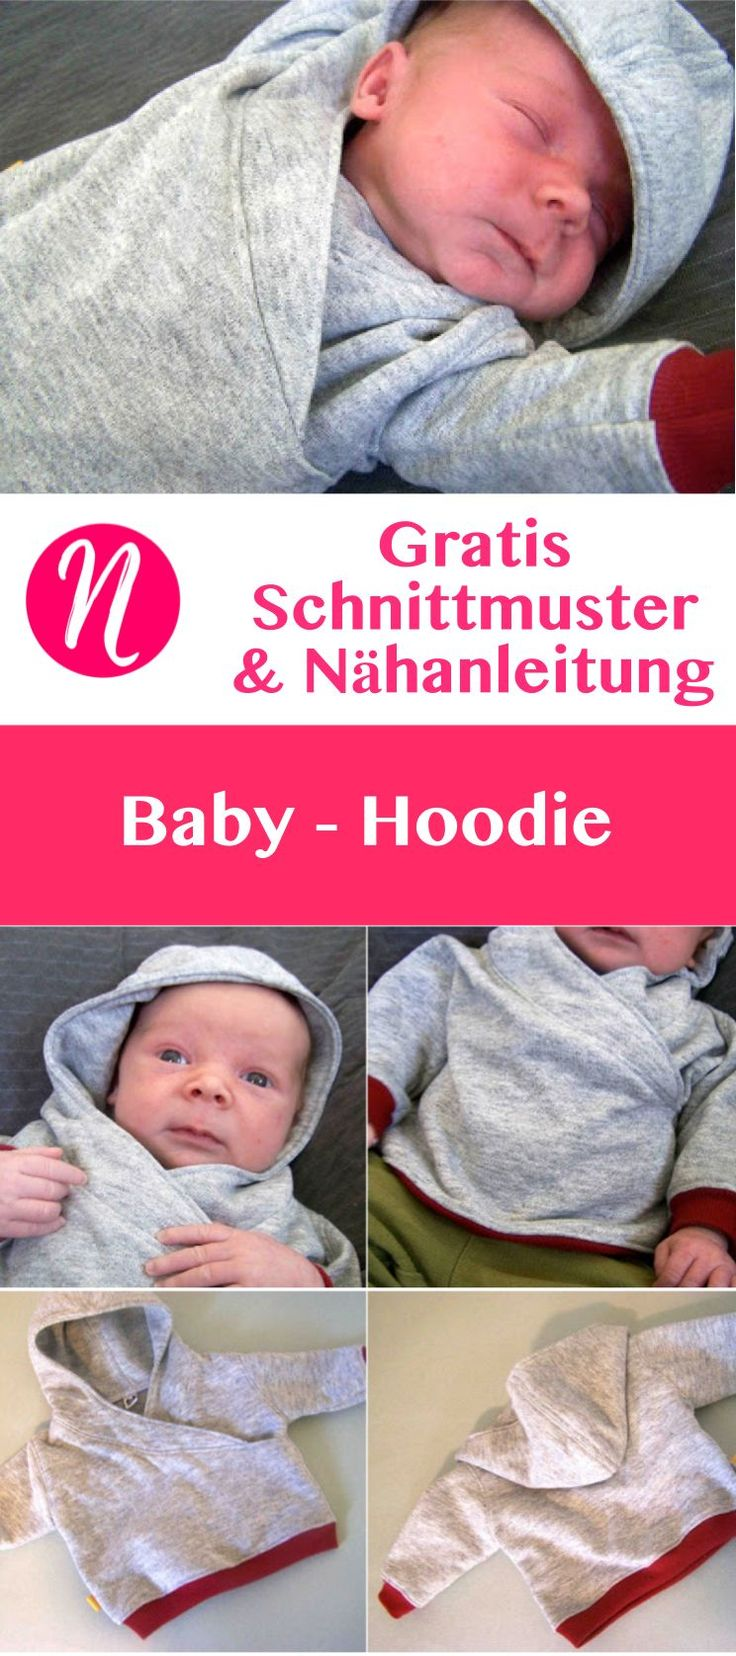 Baby-Hoodie selber nähen - 0 - 3 Monate - Kostenloses PDF-Schnittmuster zum Ausdrucken - Foto-Tutorial ✂ Nähtalente - Magazin für kostenlose Schnittmuster ✂ - Free sewing pattern for a baby hoodie. For 0 - 3 month